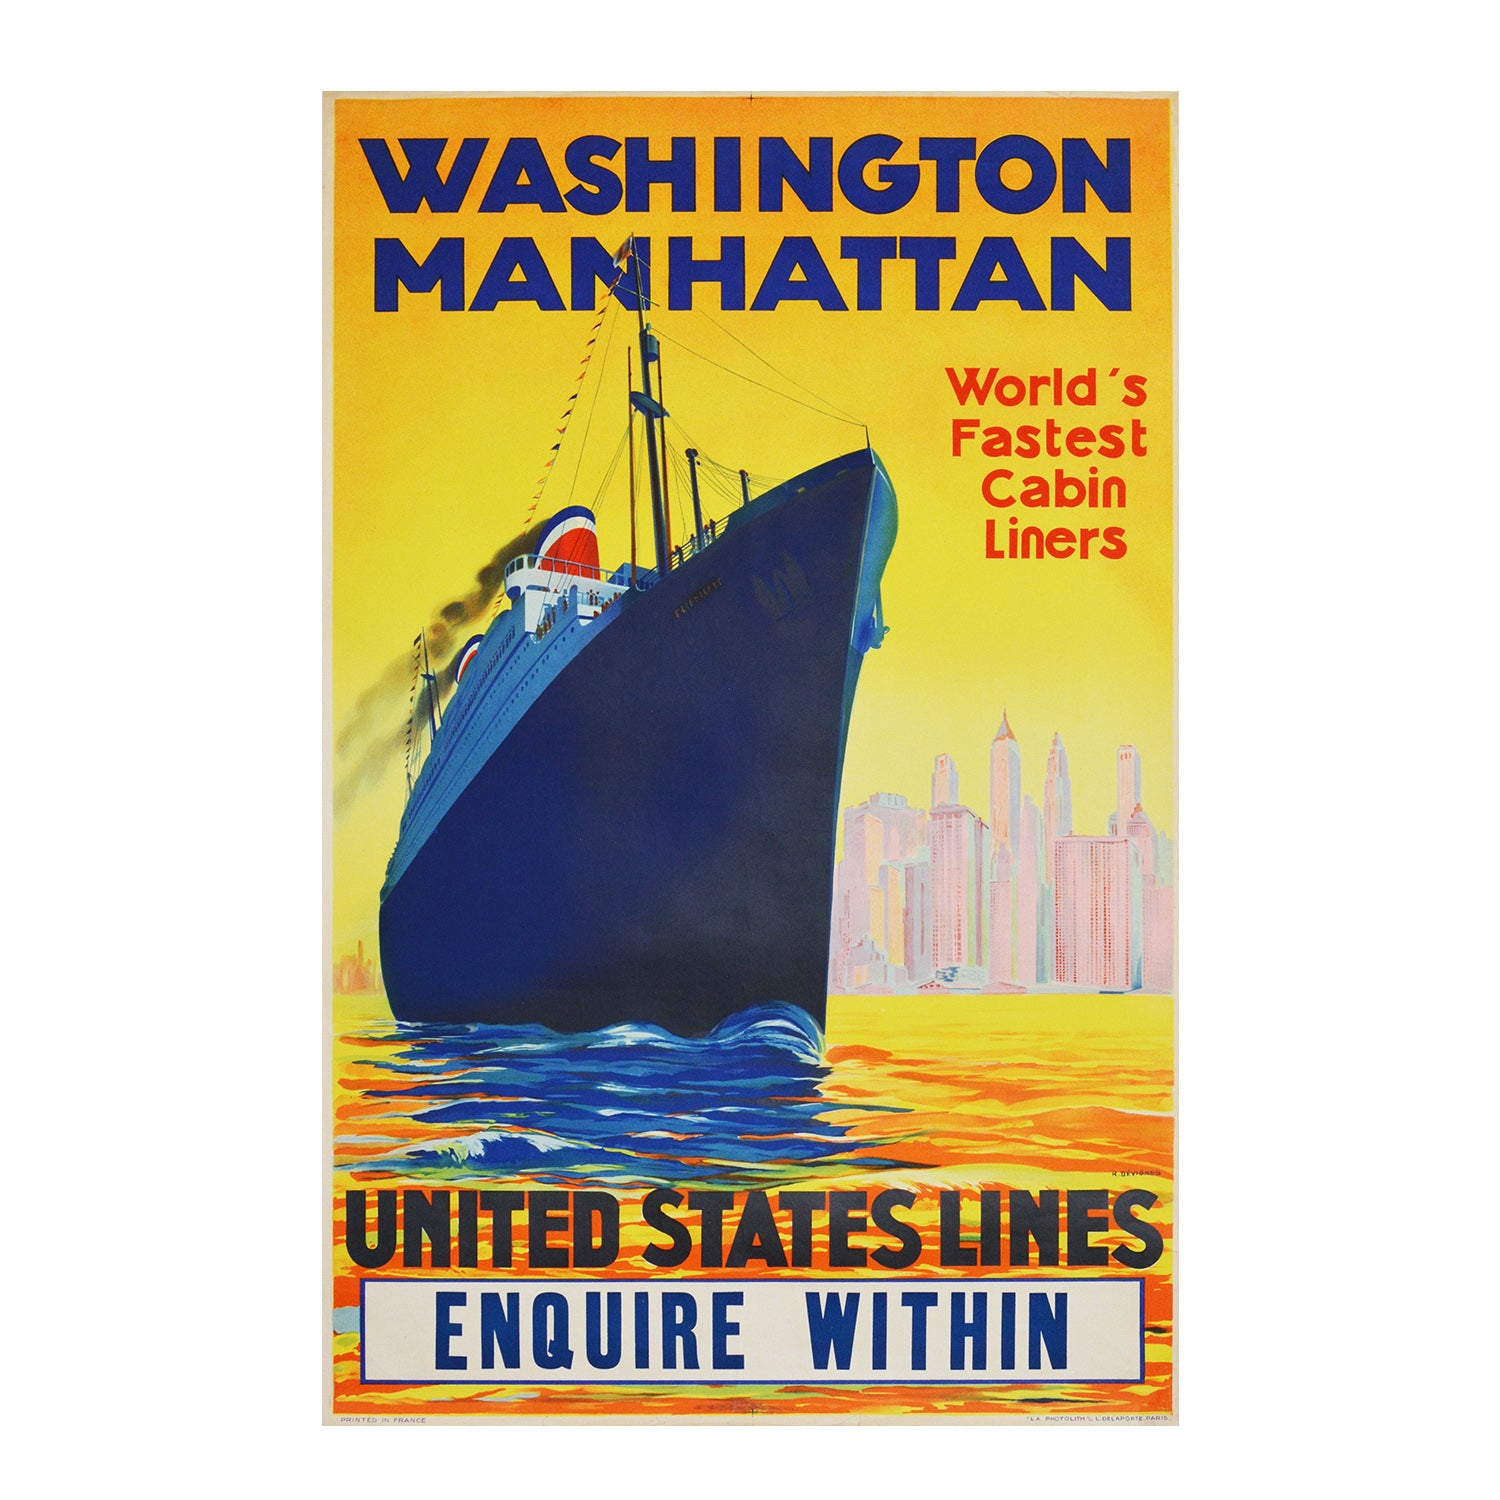 A stylish original United States Lines poster promoting the company's latest transatlantic passenger liners Manhattan and Washington